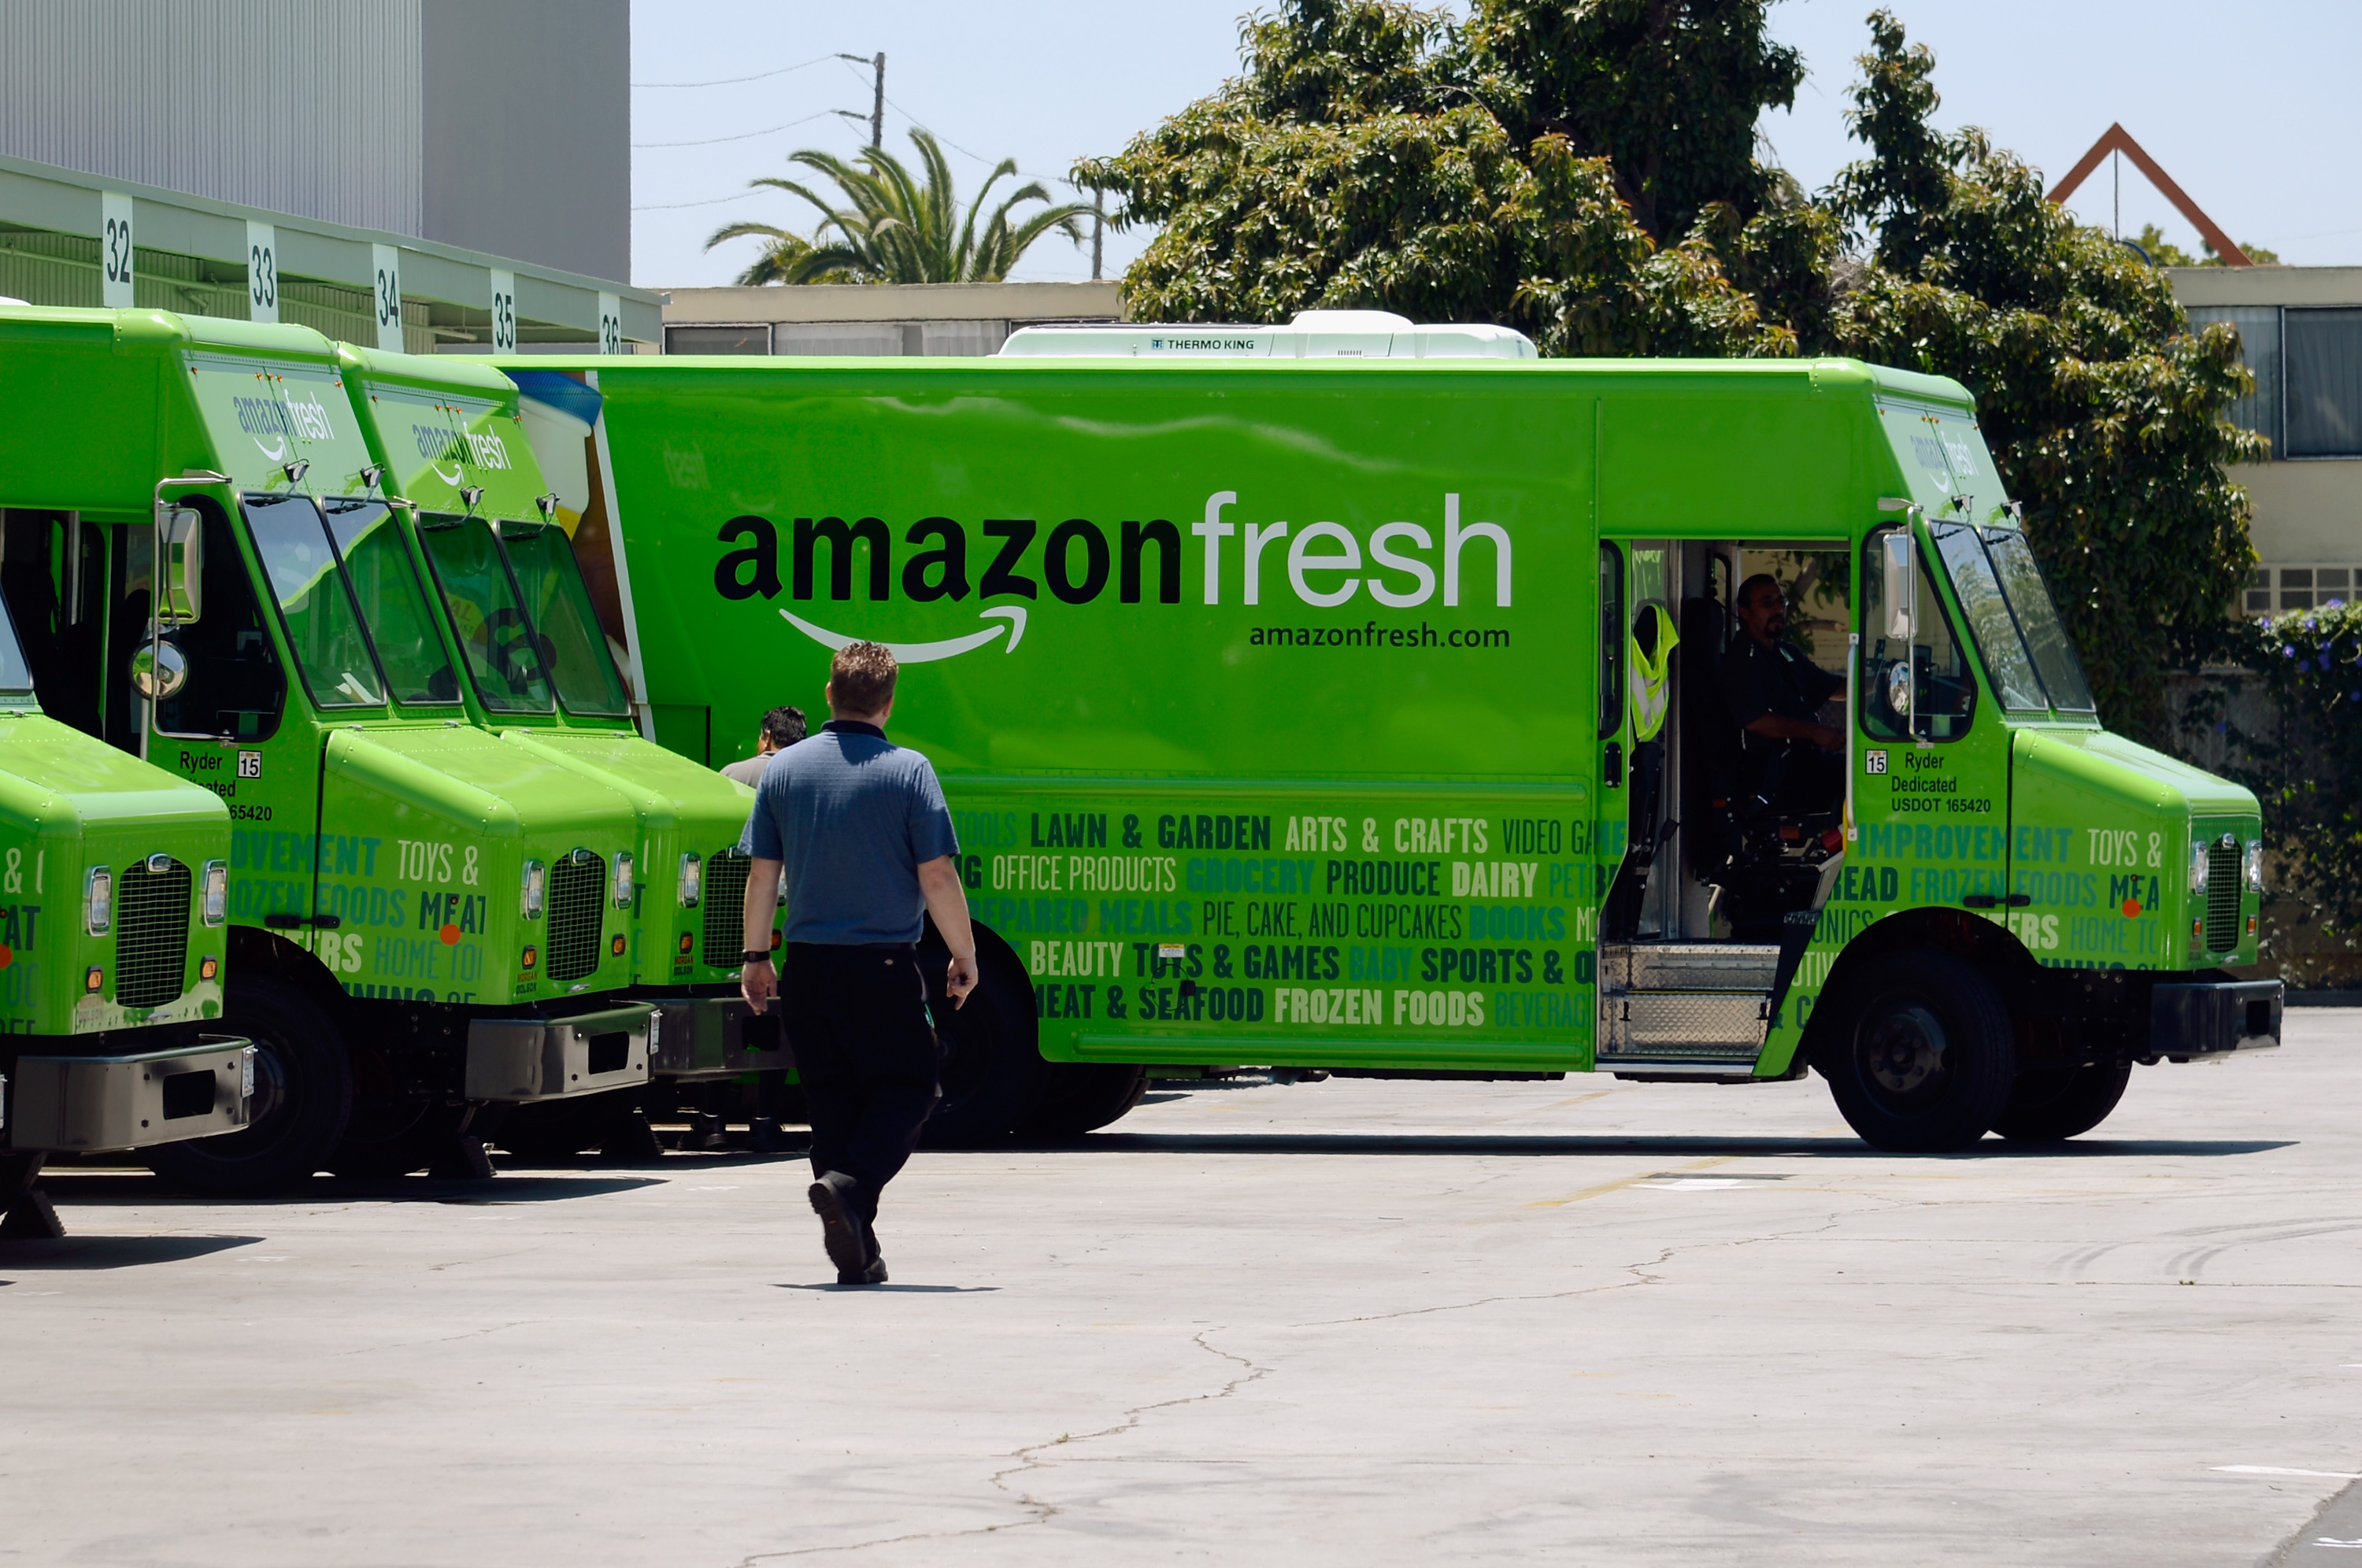 An Amazon Fresh truck arrives at a warehouse on June 27, 2013 in Inglewood, California.